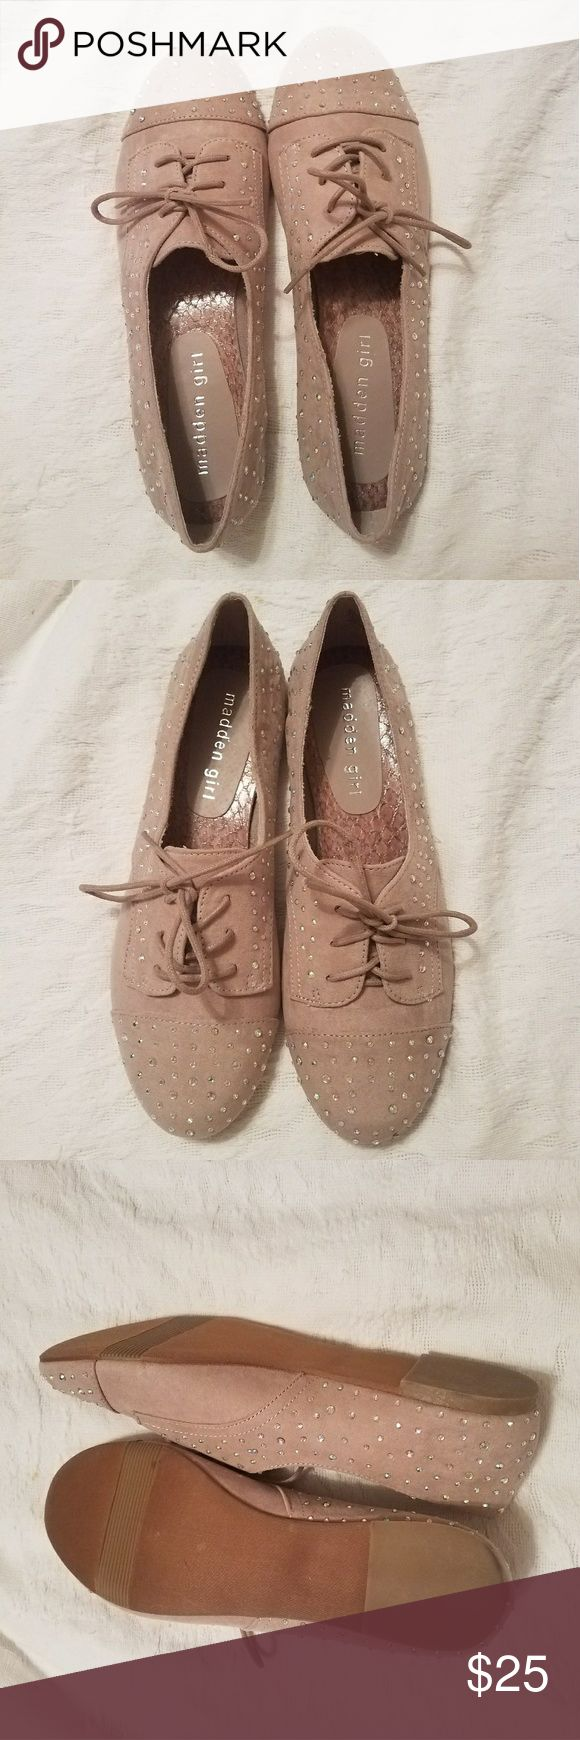 Madden Girl Julissa Blush Tie-Up Flats Blush colored and rhinestone tie-up flats.  Never worn and have been sitting in original box on touched! Madden Girl Shoes Flats & Loafers